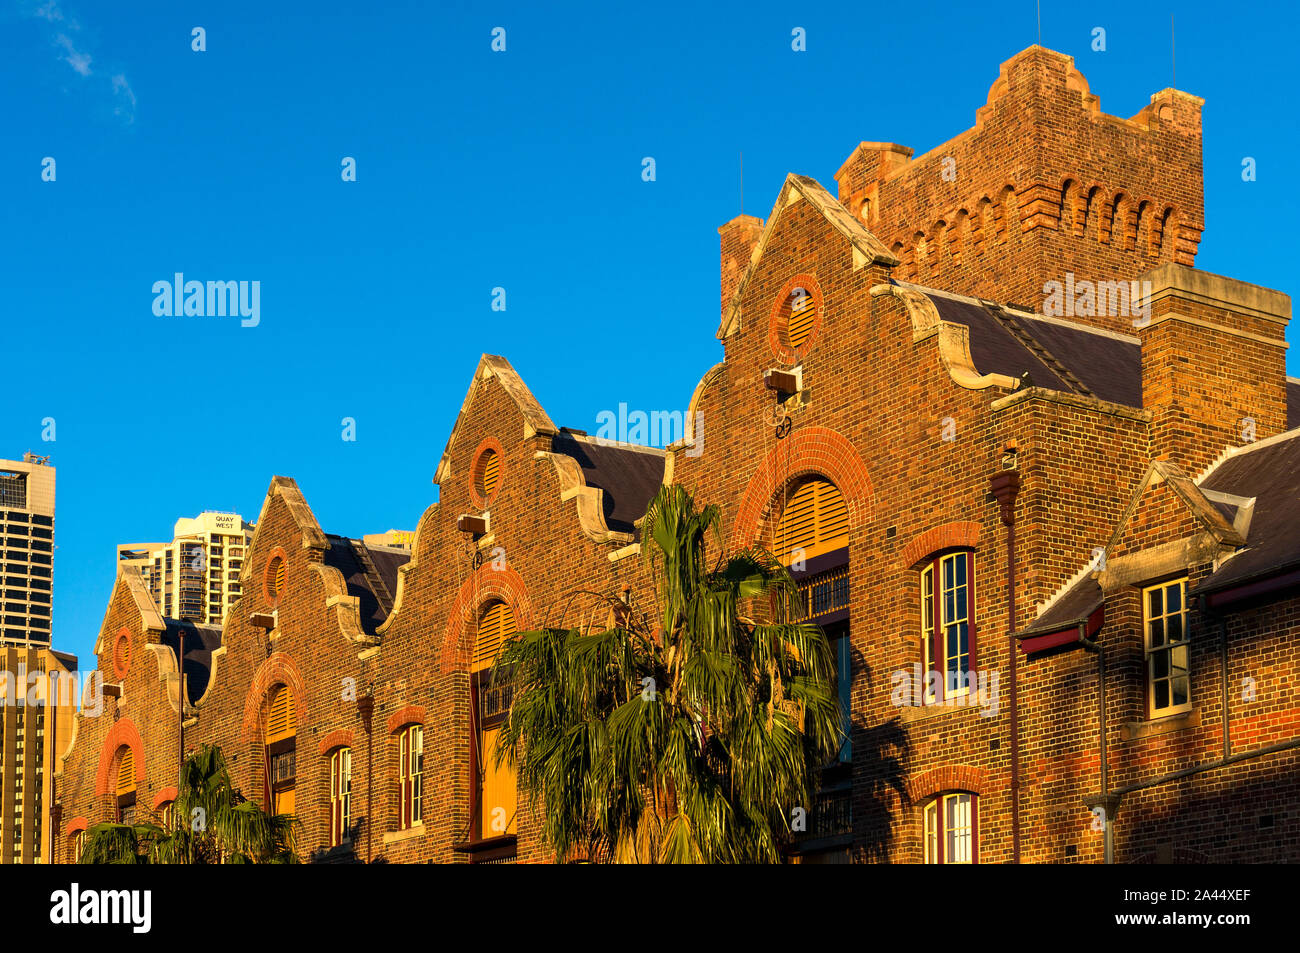 Sydney, Australia - Jul 23, 2016: Australasian Steam Navigation Co. building exterior. It is warehouse in The Rocks suburb in Federation Anglo-Dutch a Stock Photo